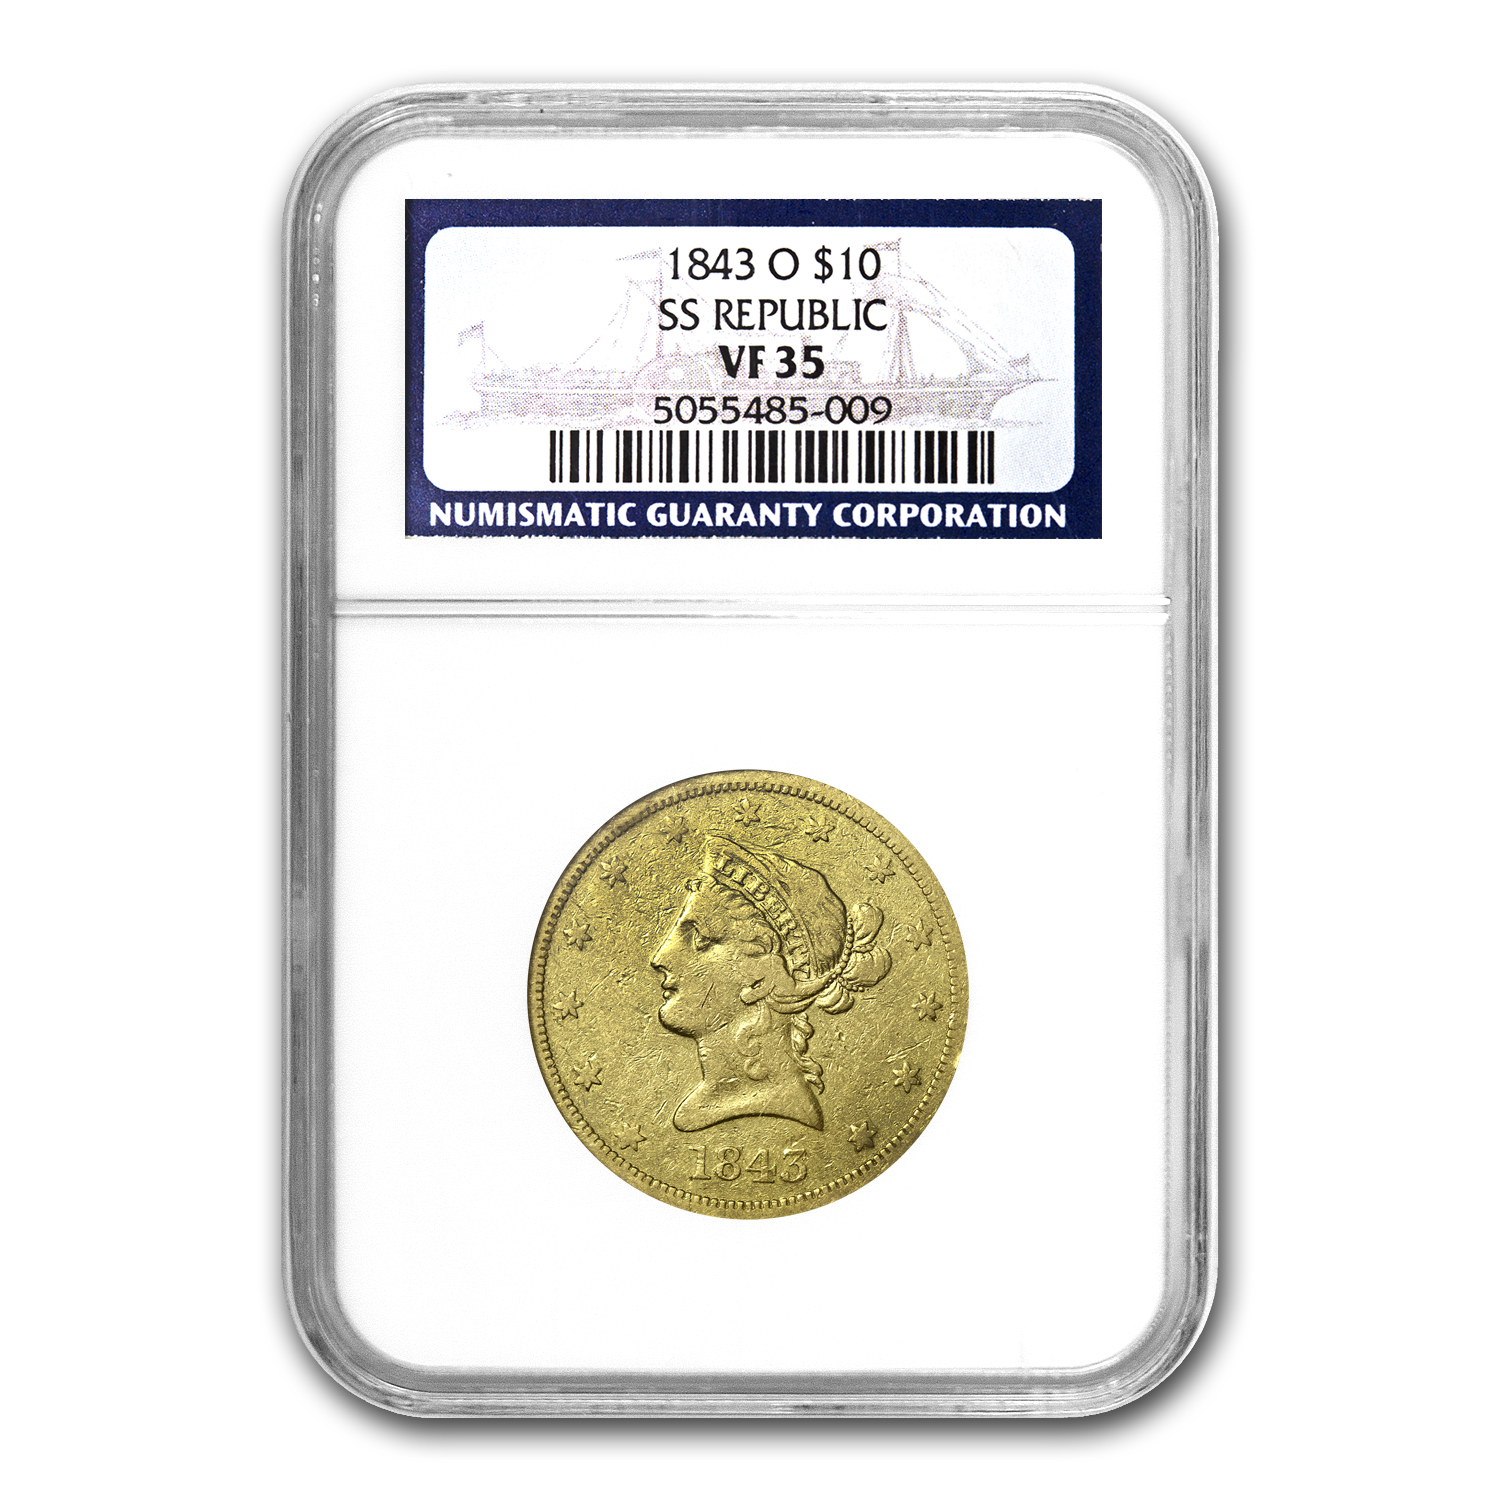 1843-O $10 Liberty Gold Eagle VF-35 NGC (SS Republic)